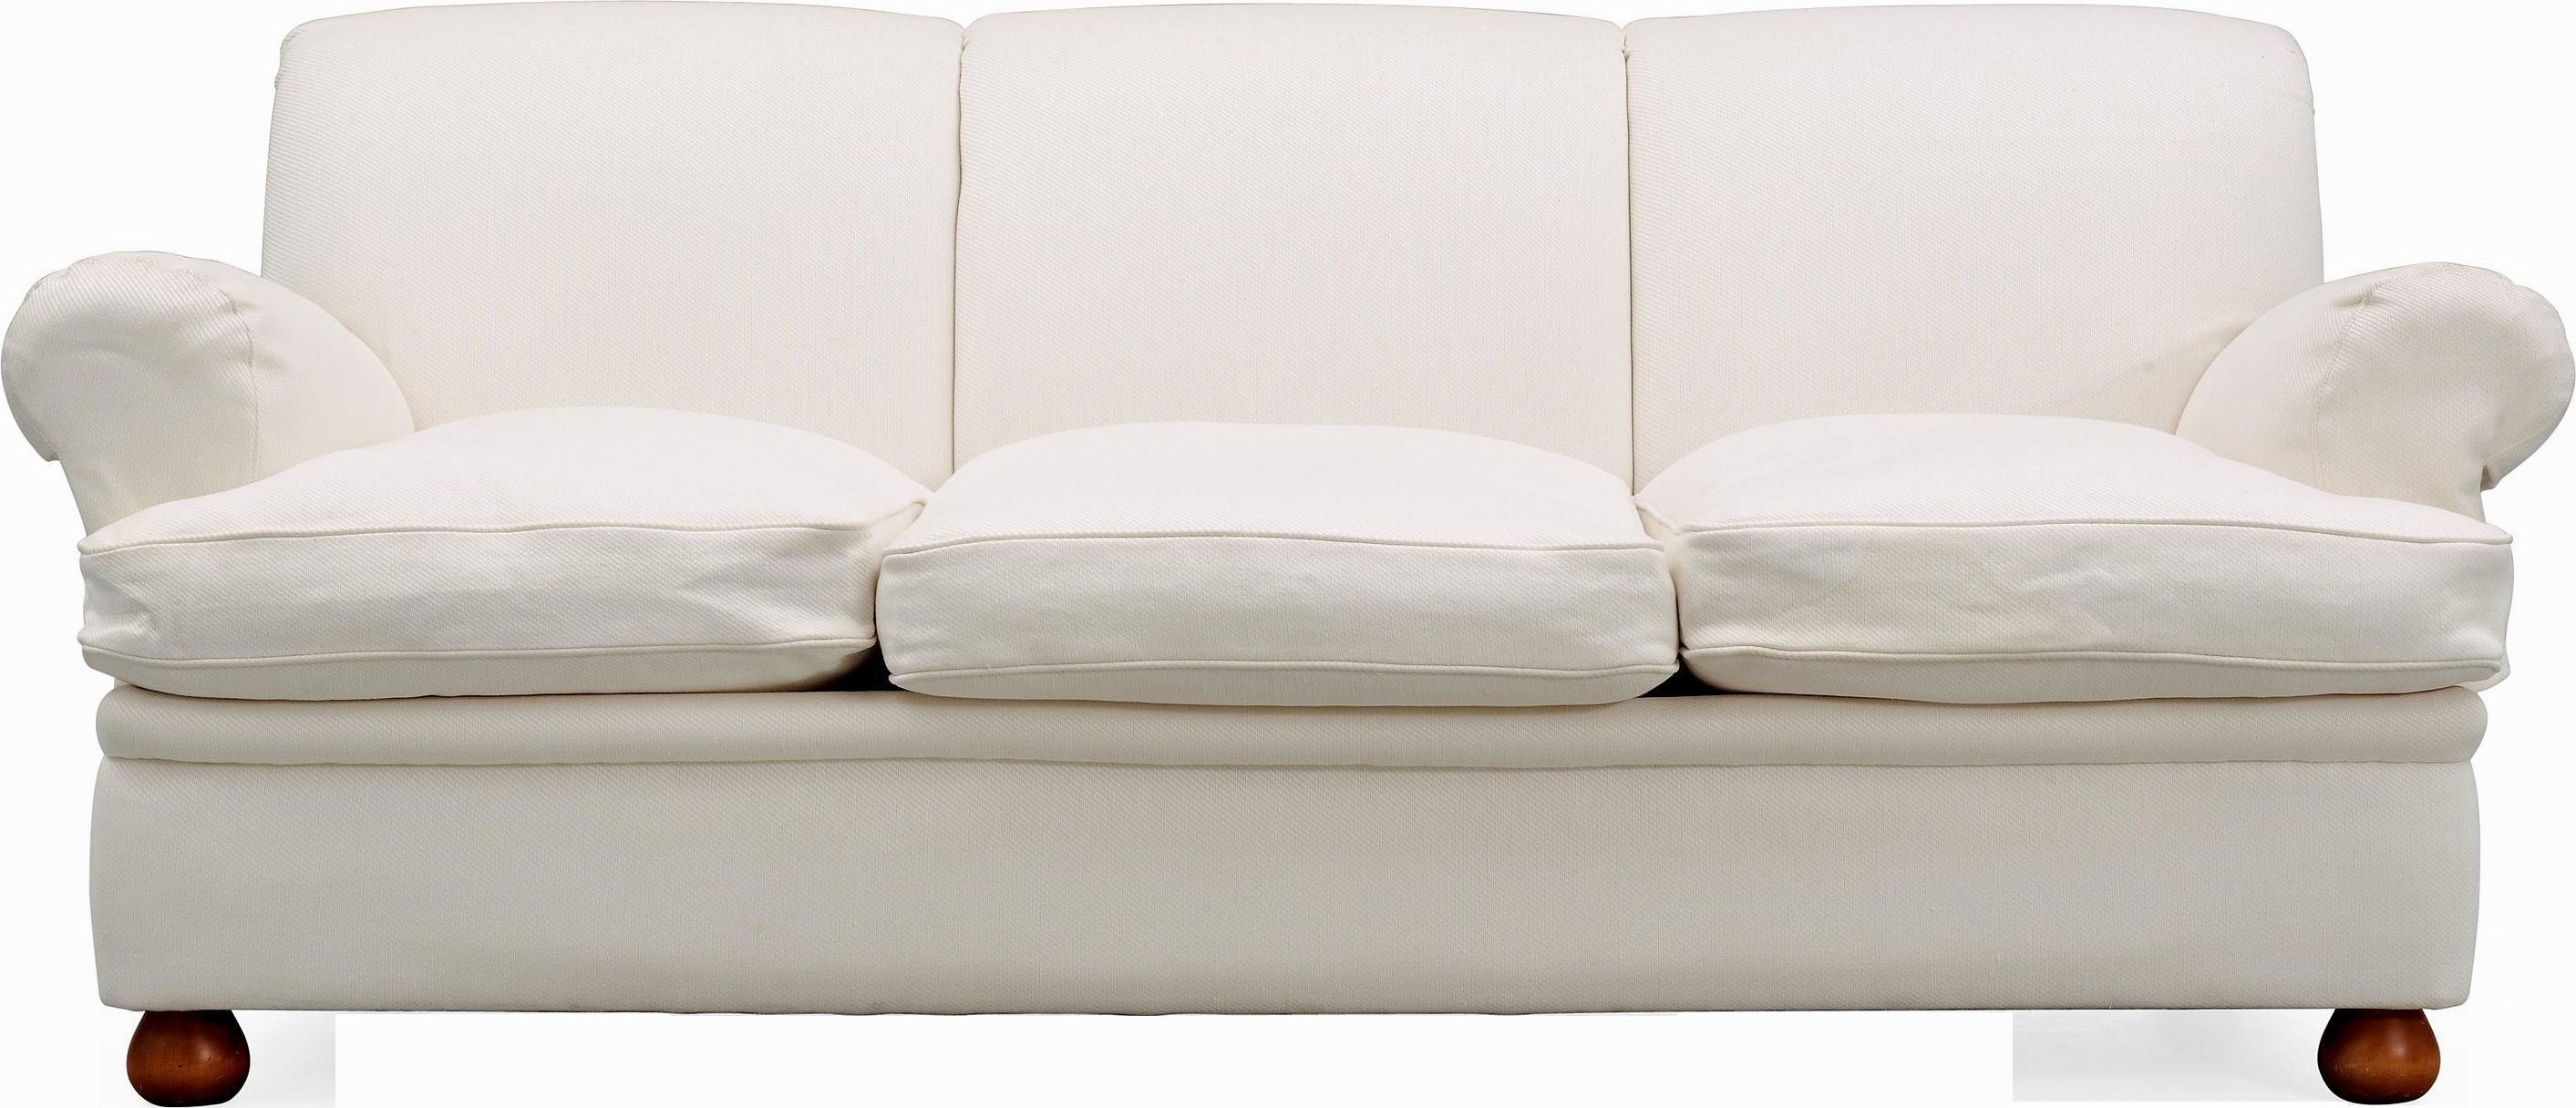 finest sofa covers cheap concept-Lovely sofa Covers Cheap Layout